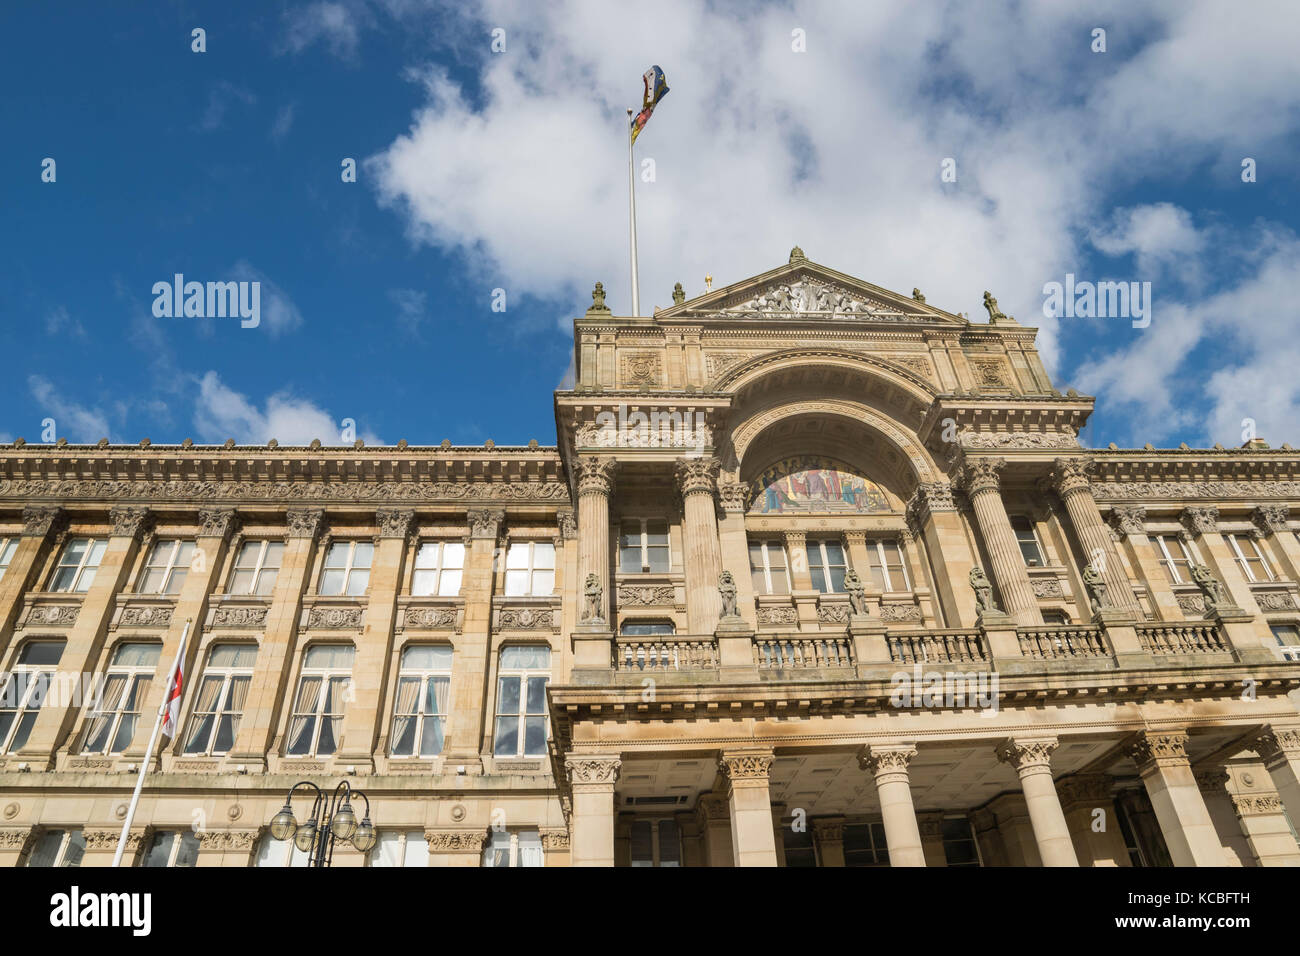 Birmingham, UK, October 3rd, 2017: Birmingham city council - Stock Image